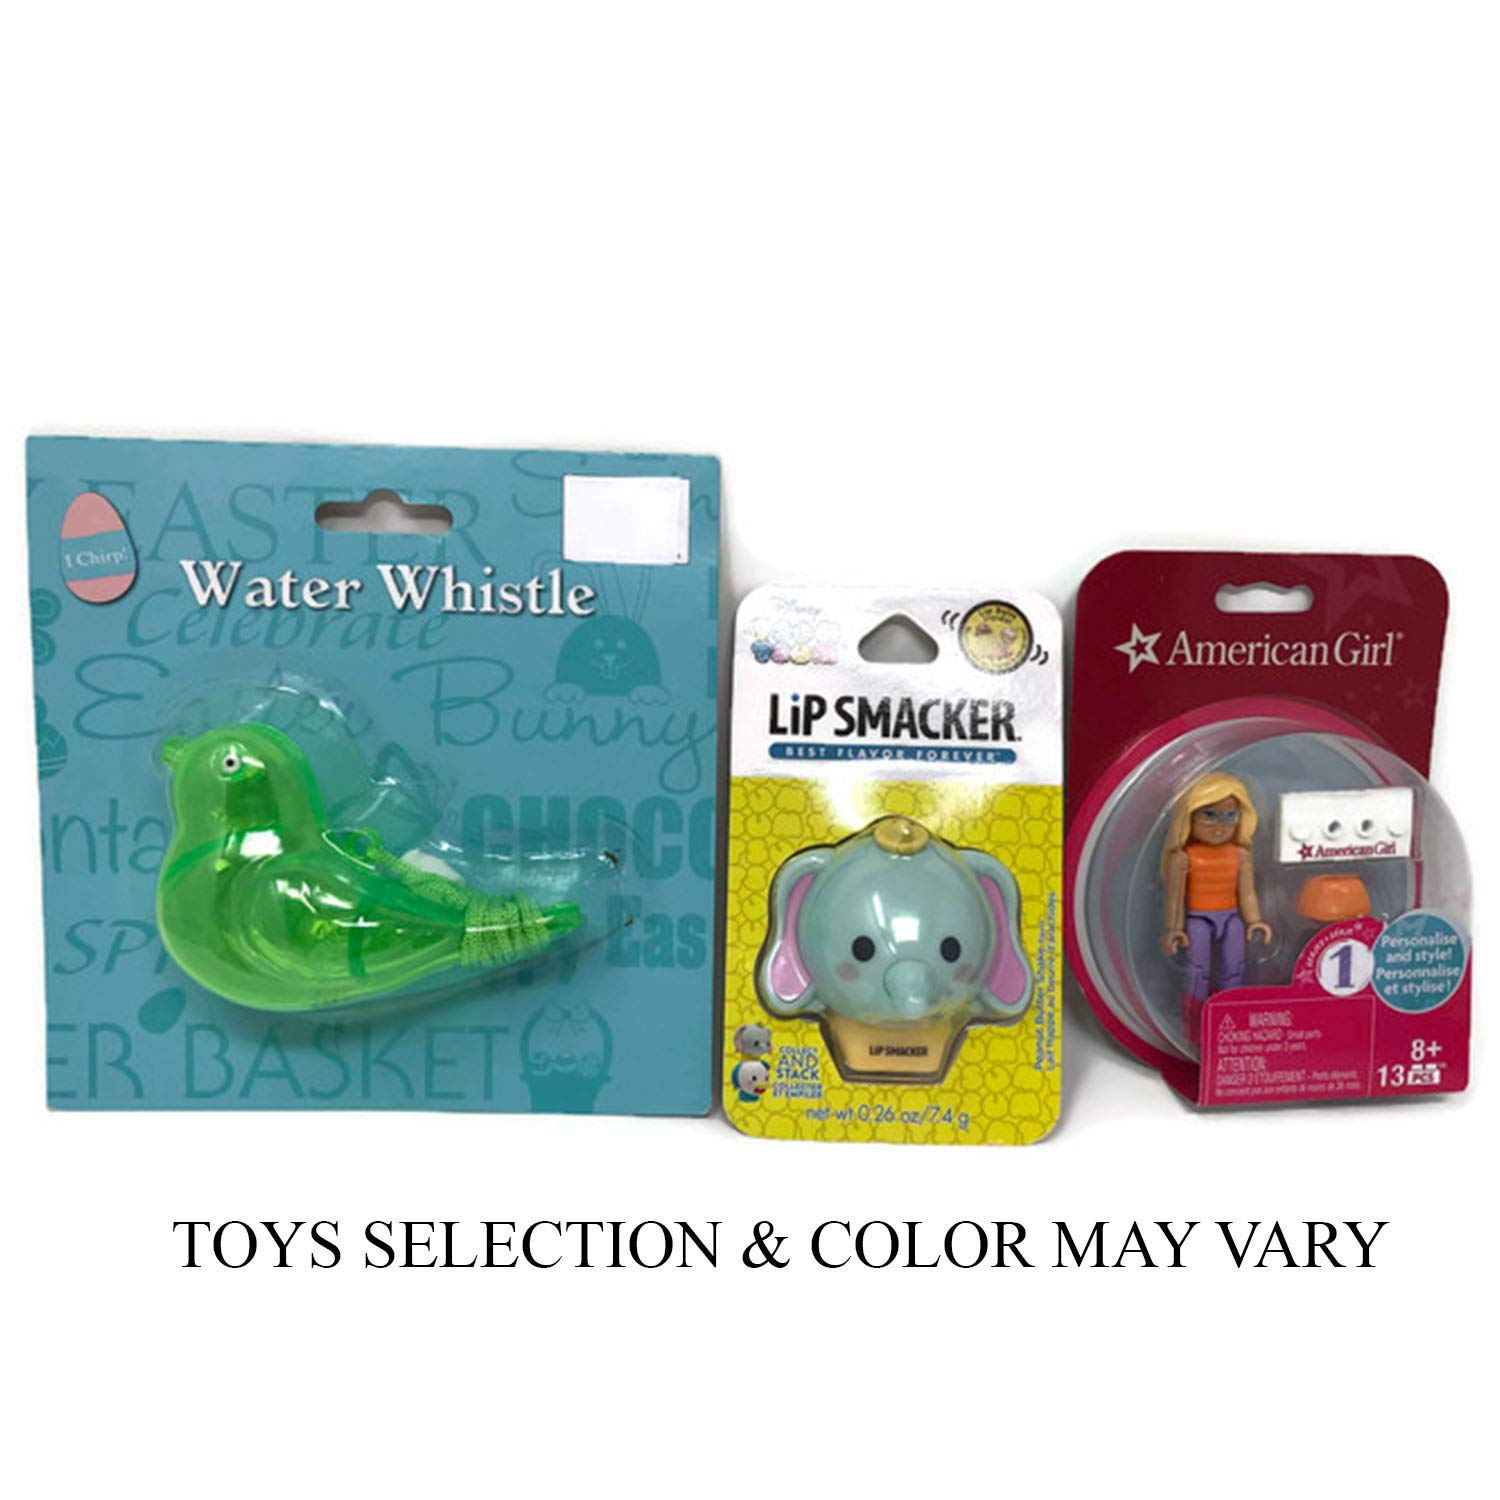 Pez Easter Gift Baskets For Toddler Girls Who Like Disney Princess Other Famous Movie Characters Trolls Themed Activity Toys Gifts Perfect For Birthdays Any Day Frozen Yellow Vampirina